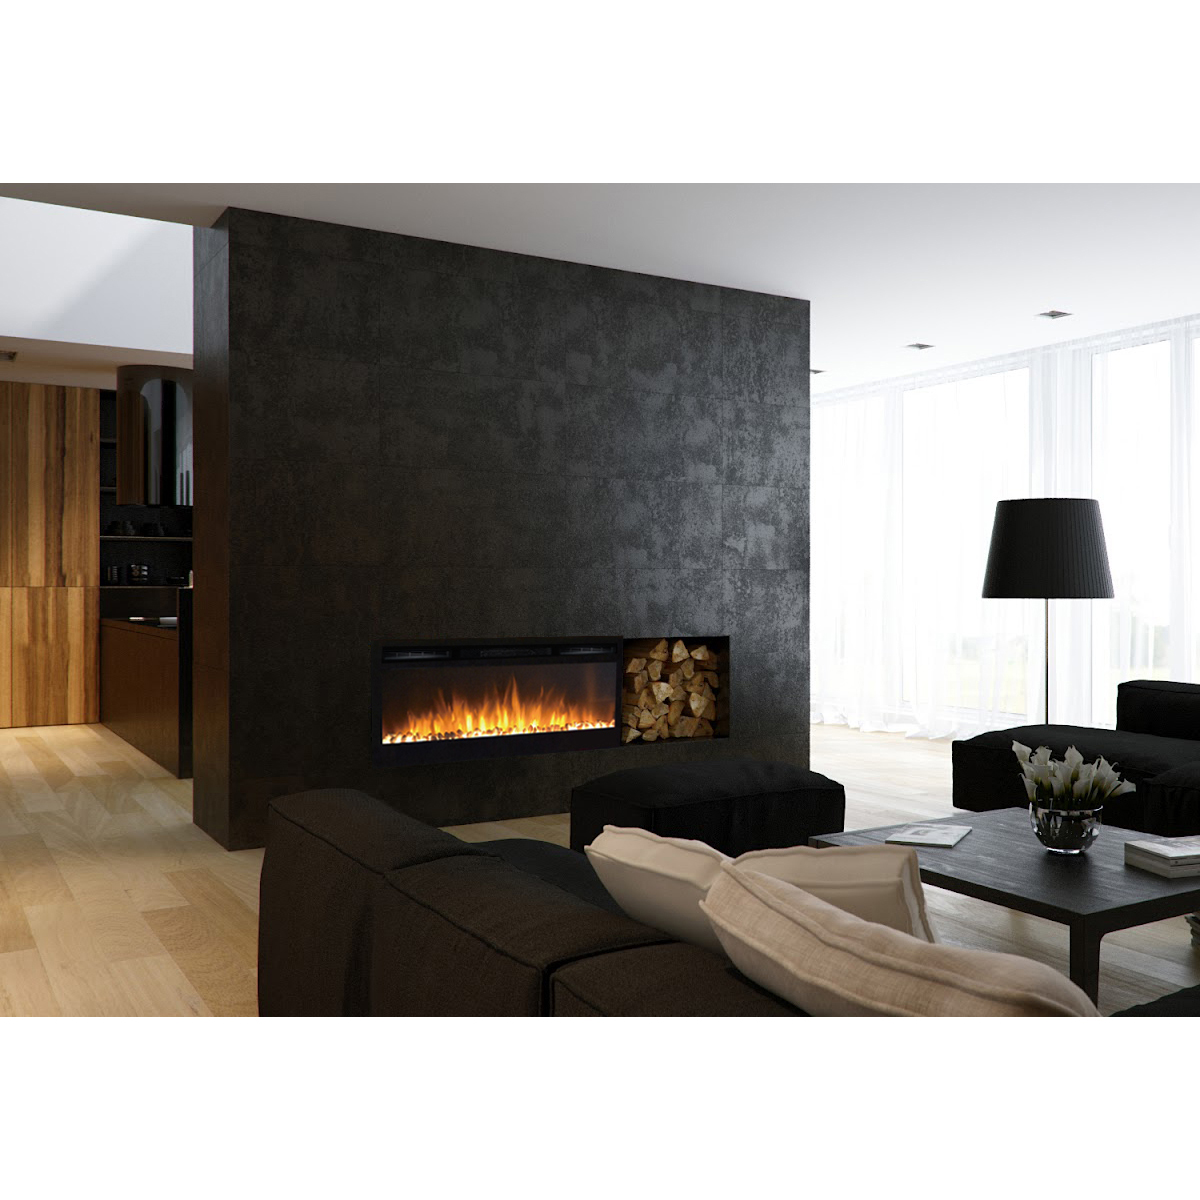 Moda Flame 36 Inch Cynergy Pebble Built In Recessed Wall Mounted Electric Fireplace